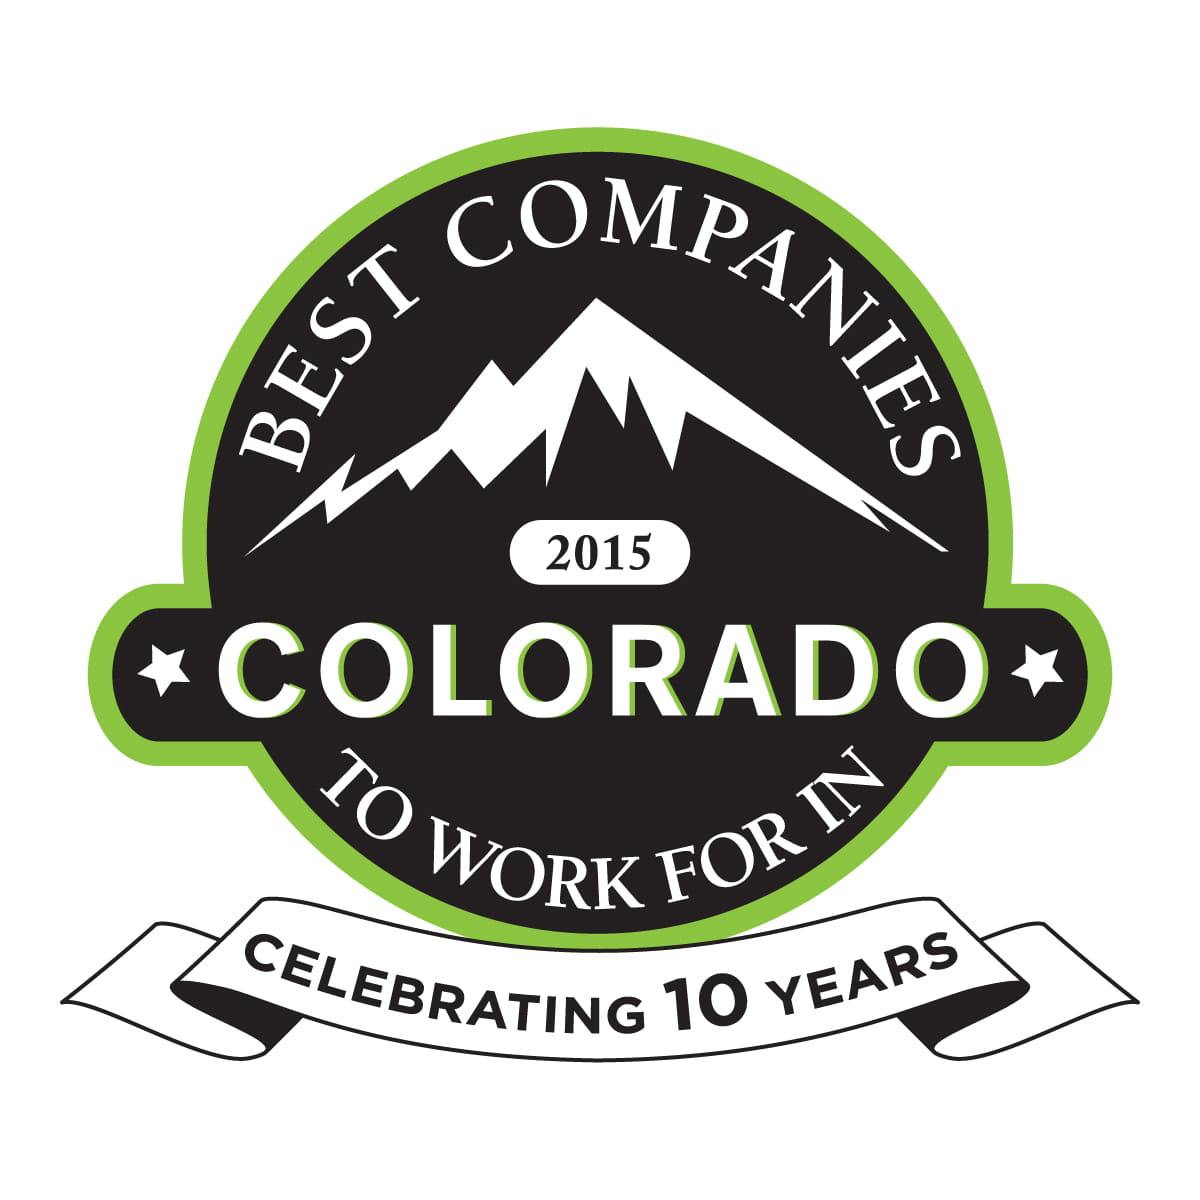 Named Best Company To Work For